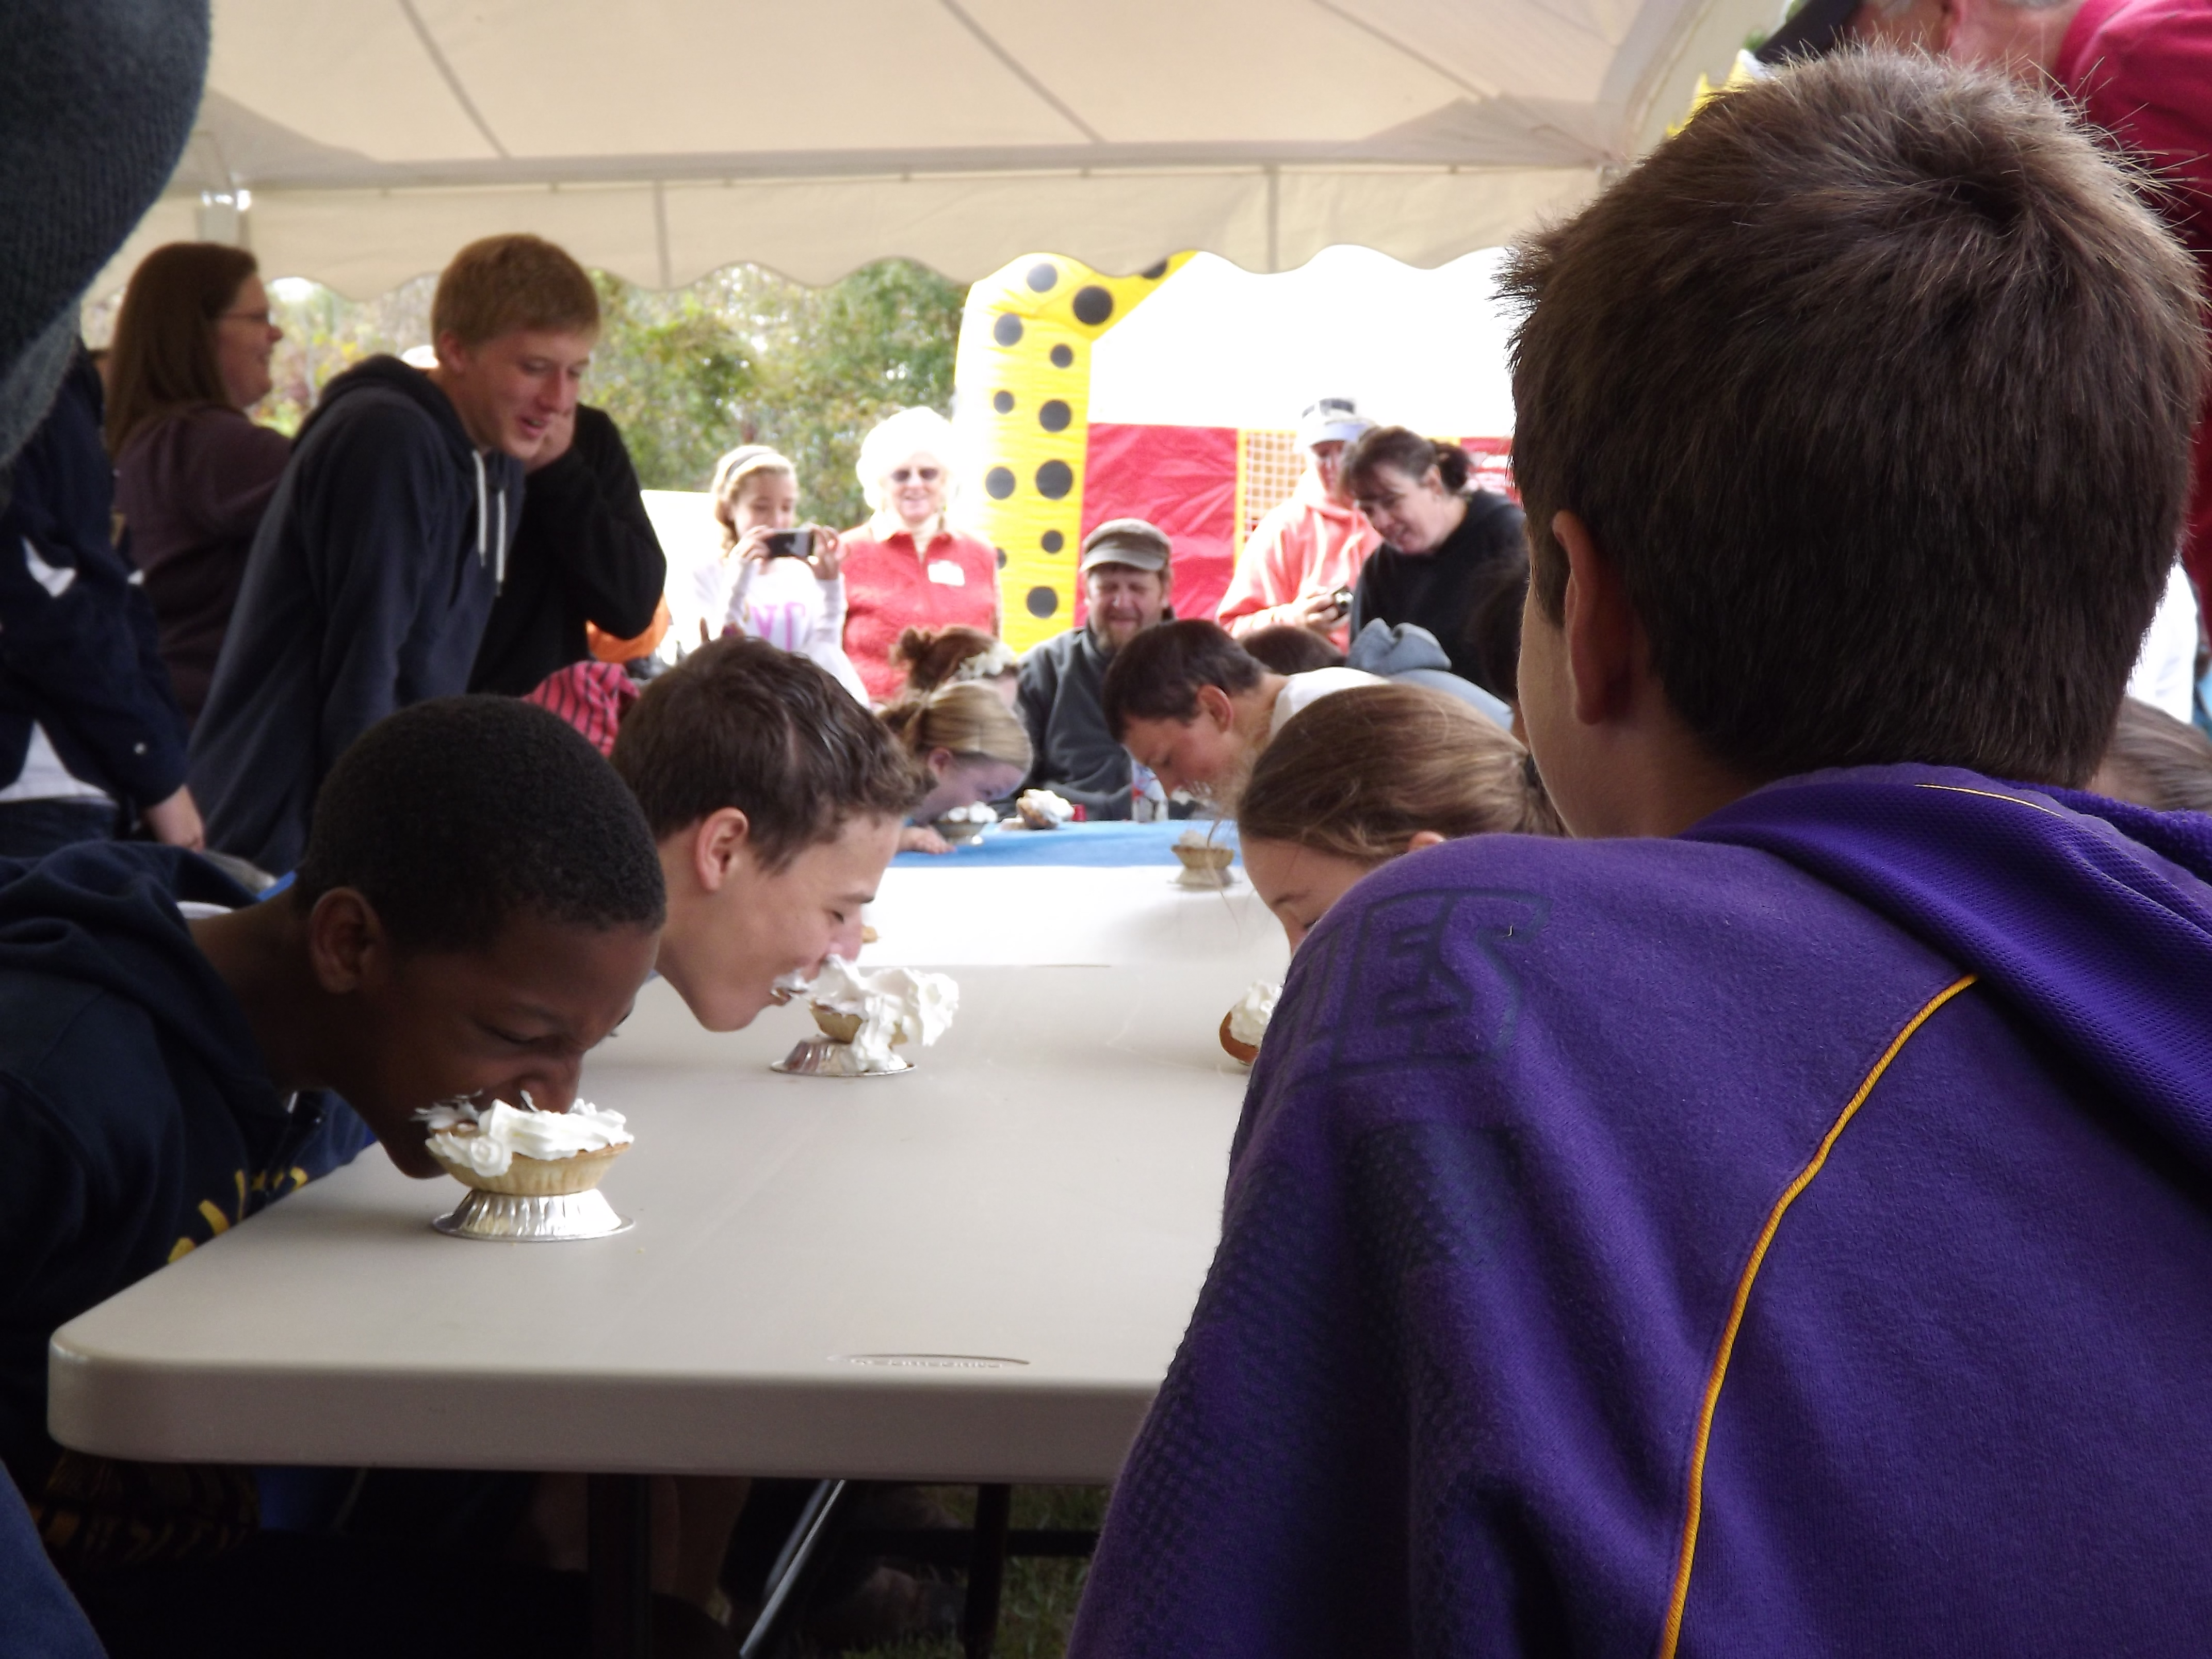 Milan Community Day - Pie-eating Contest